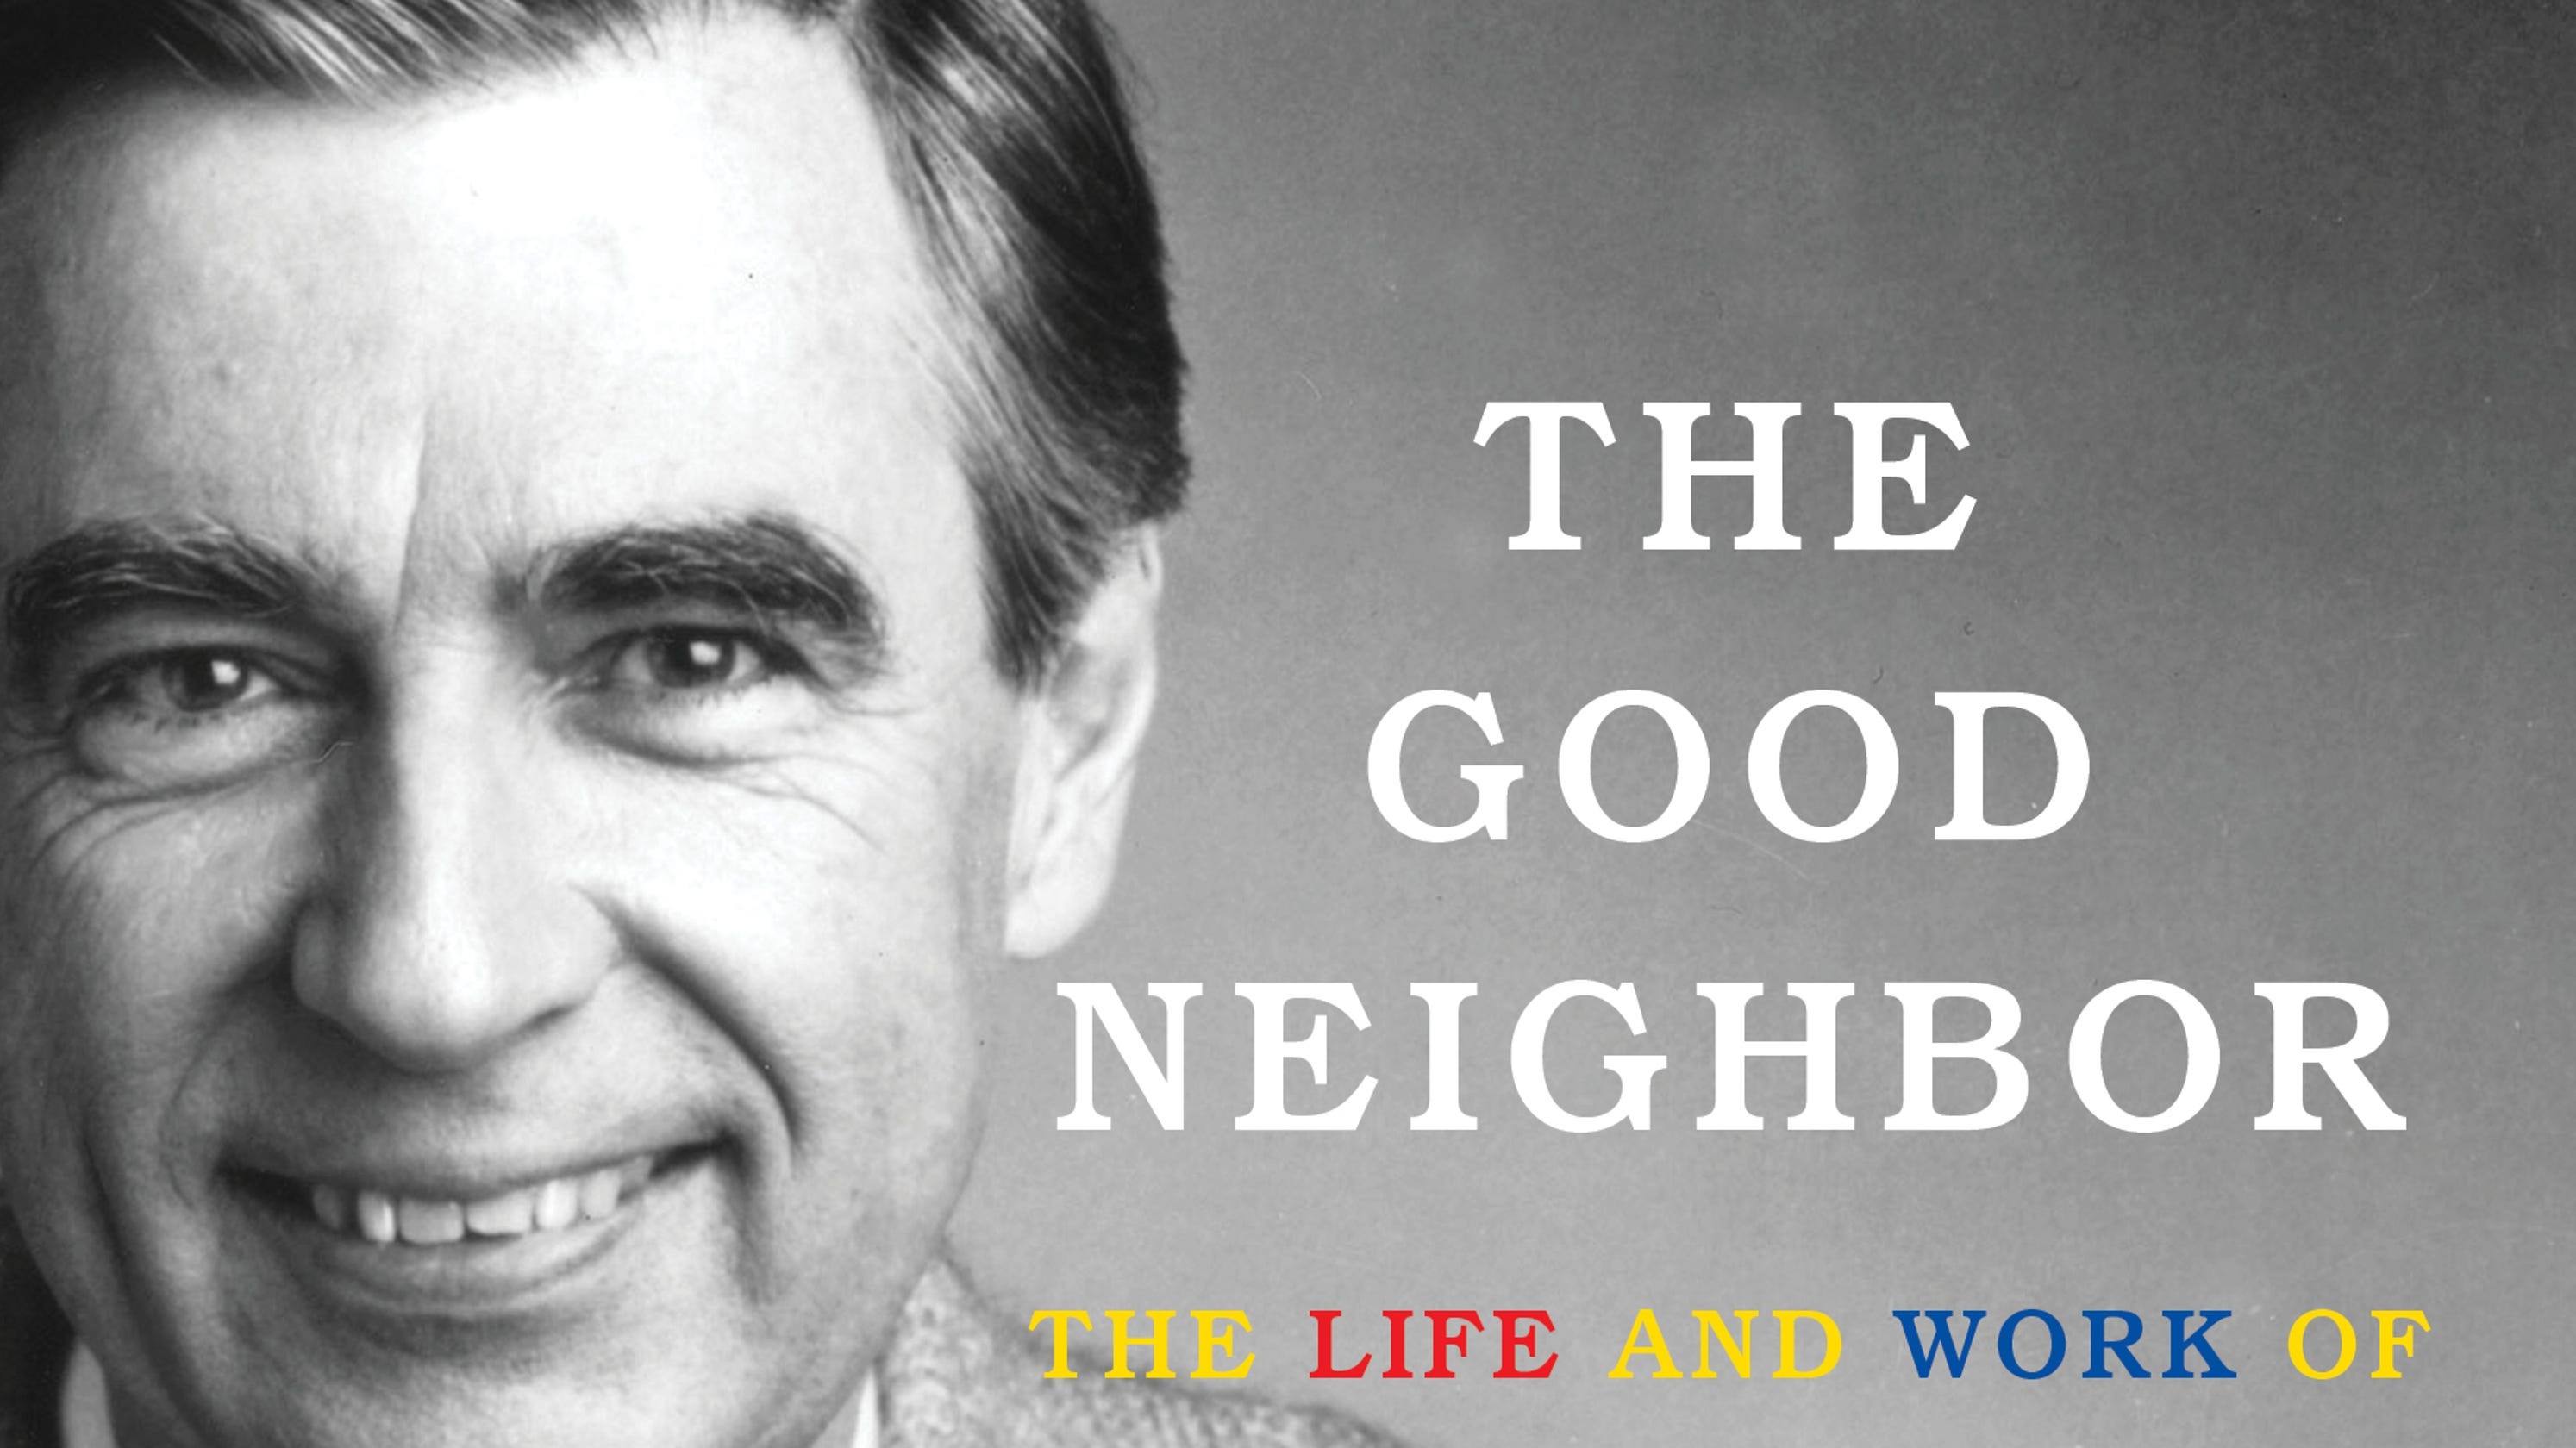 Fred Rogers biography: 5 things we learn from 'The Good Neighbor'